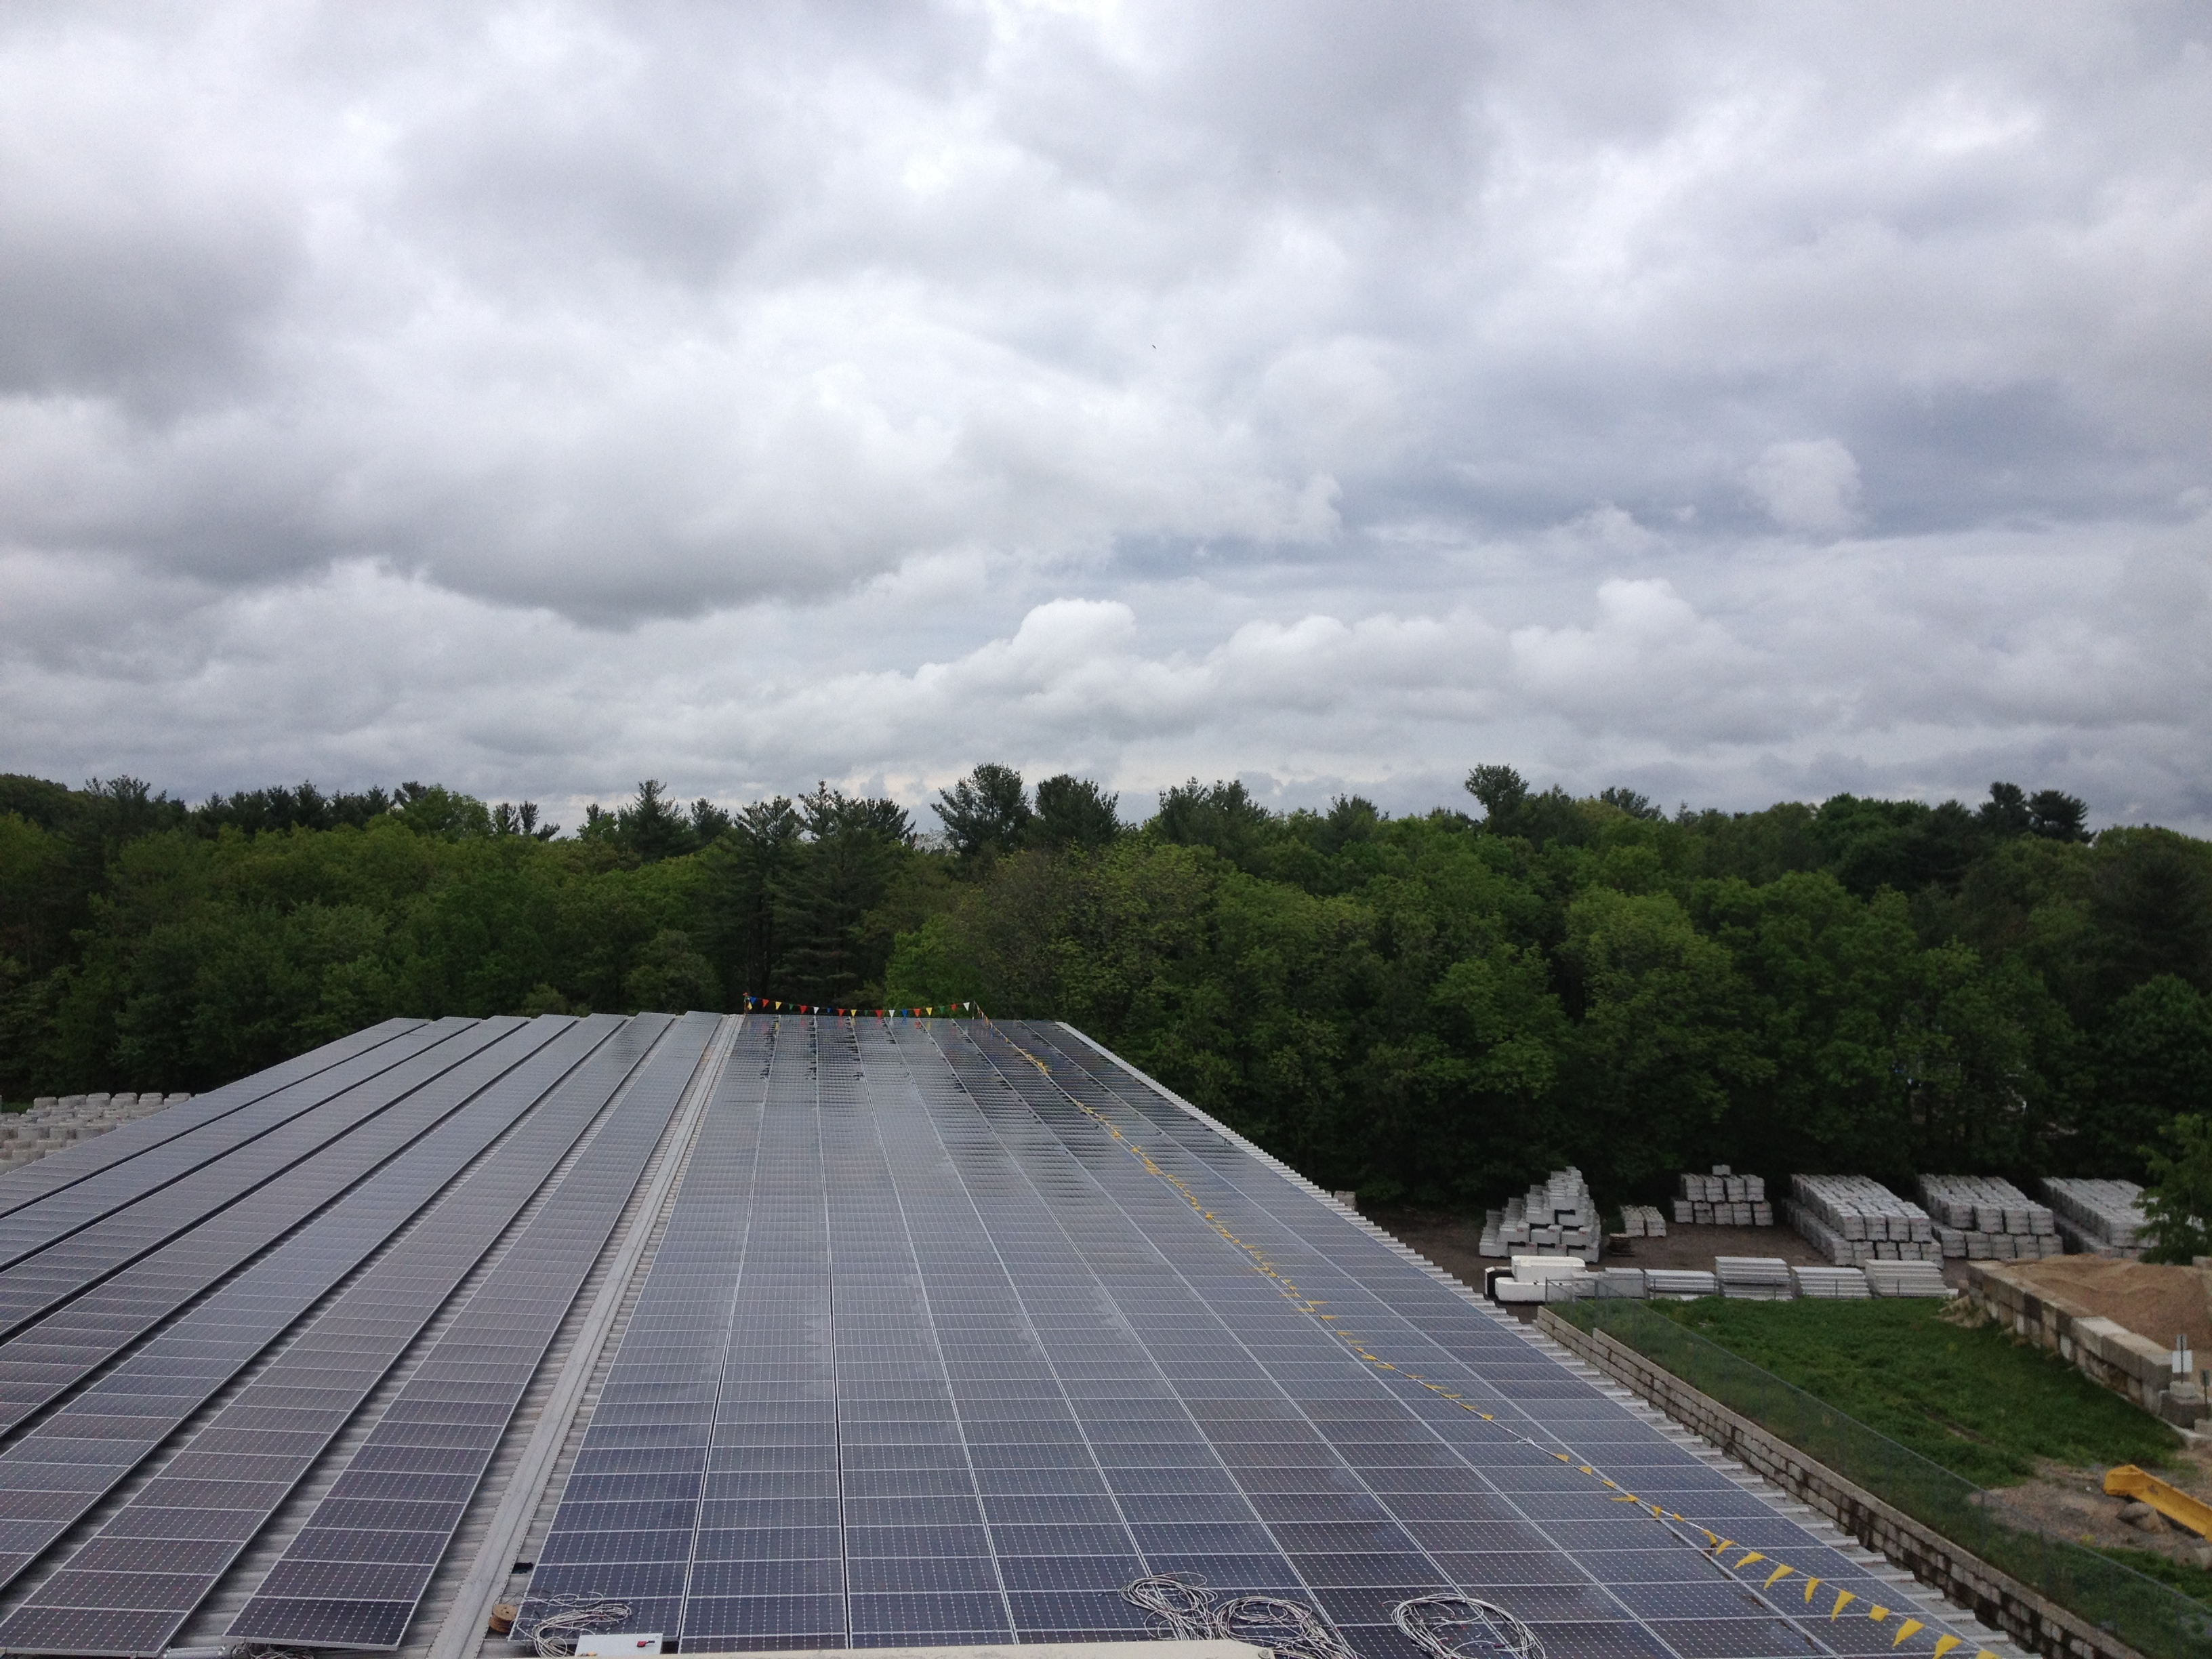 Beaumont Solar 389 kW system with SunPower panels